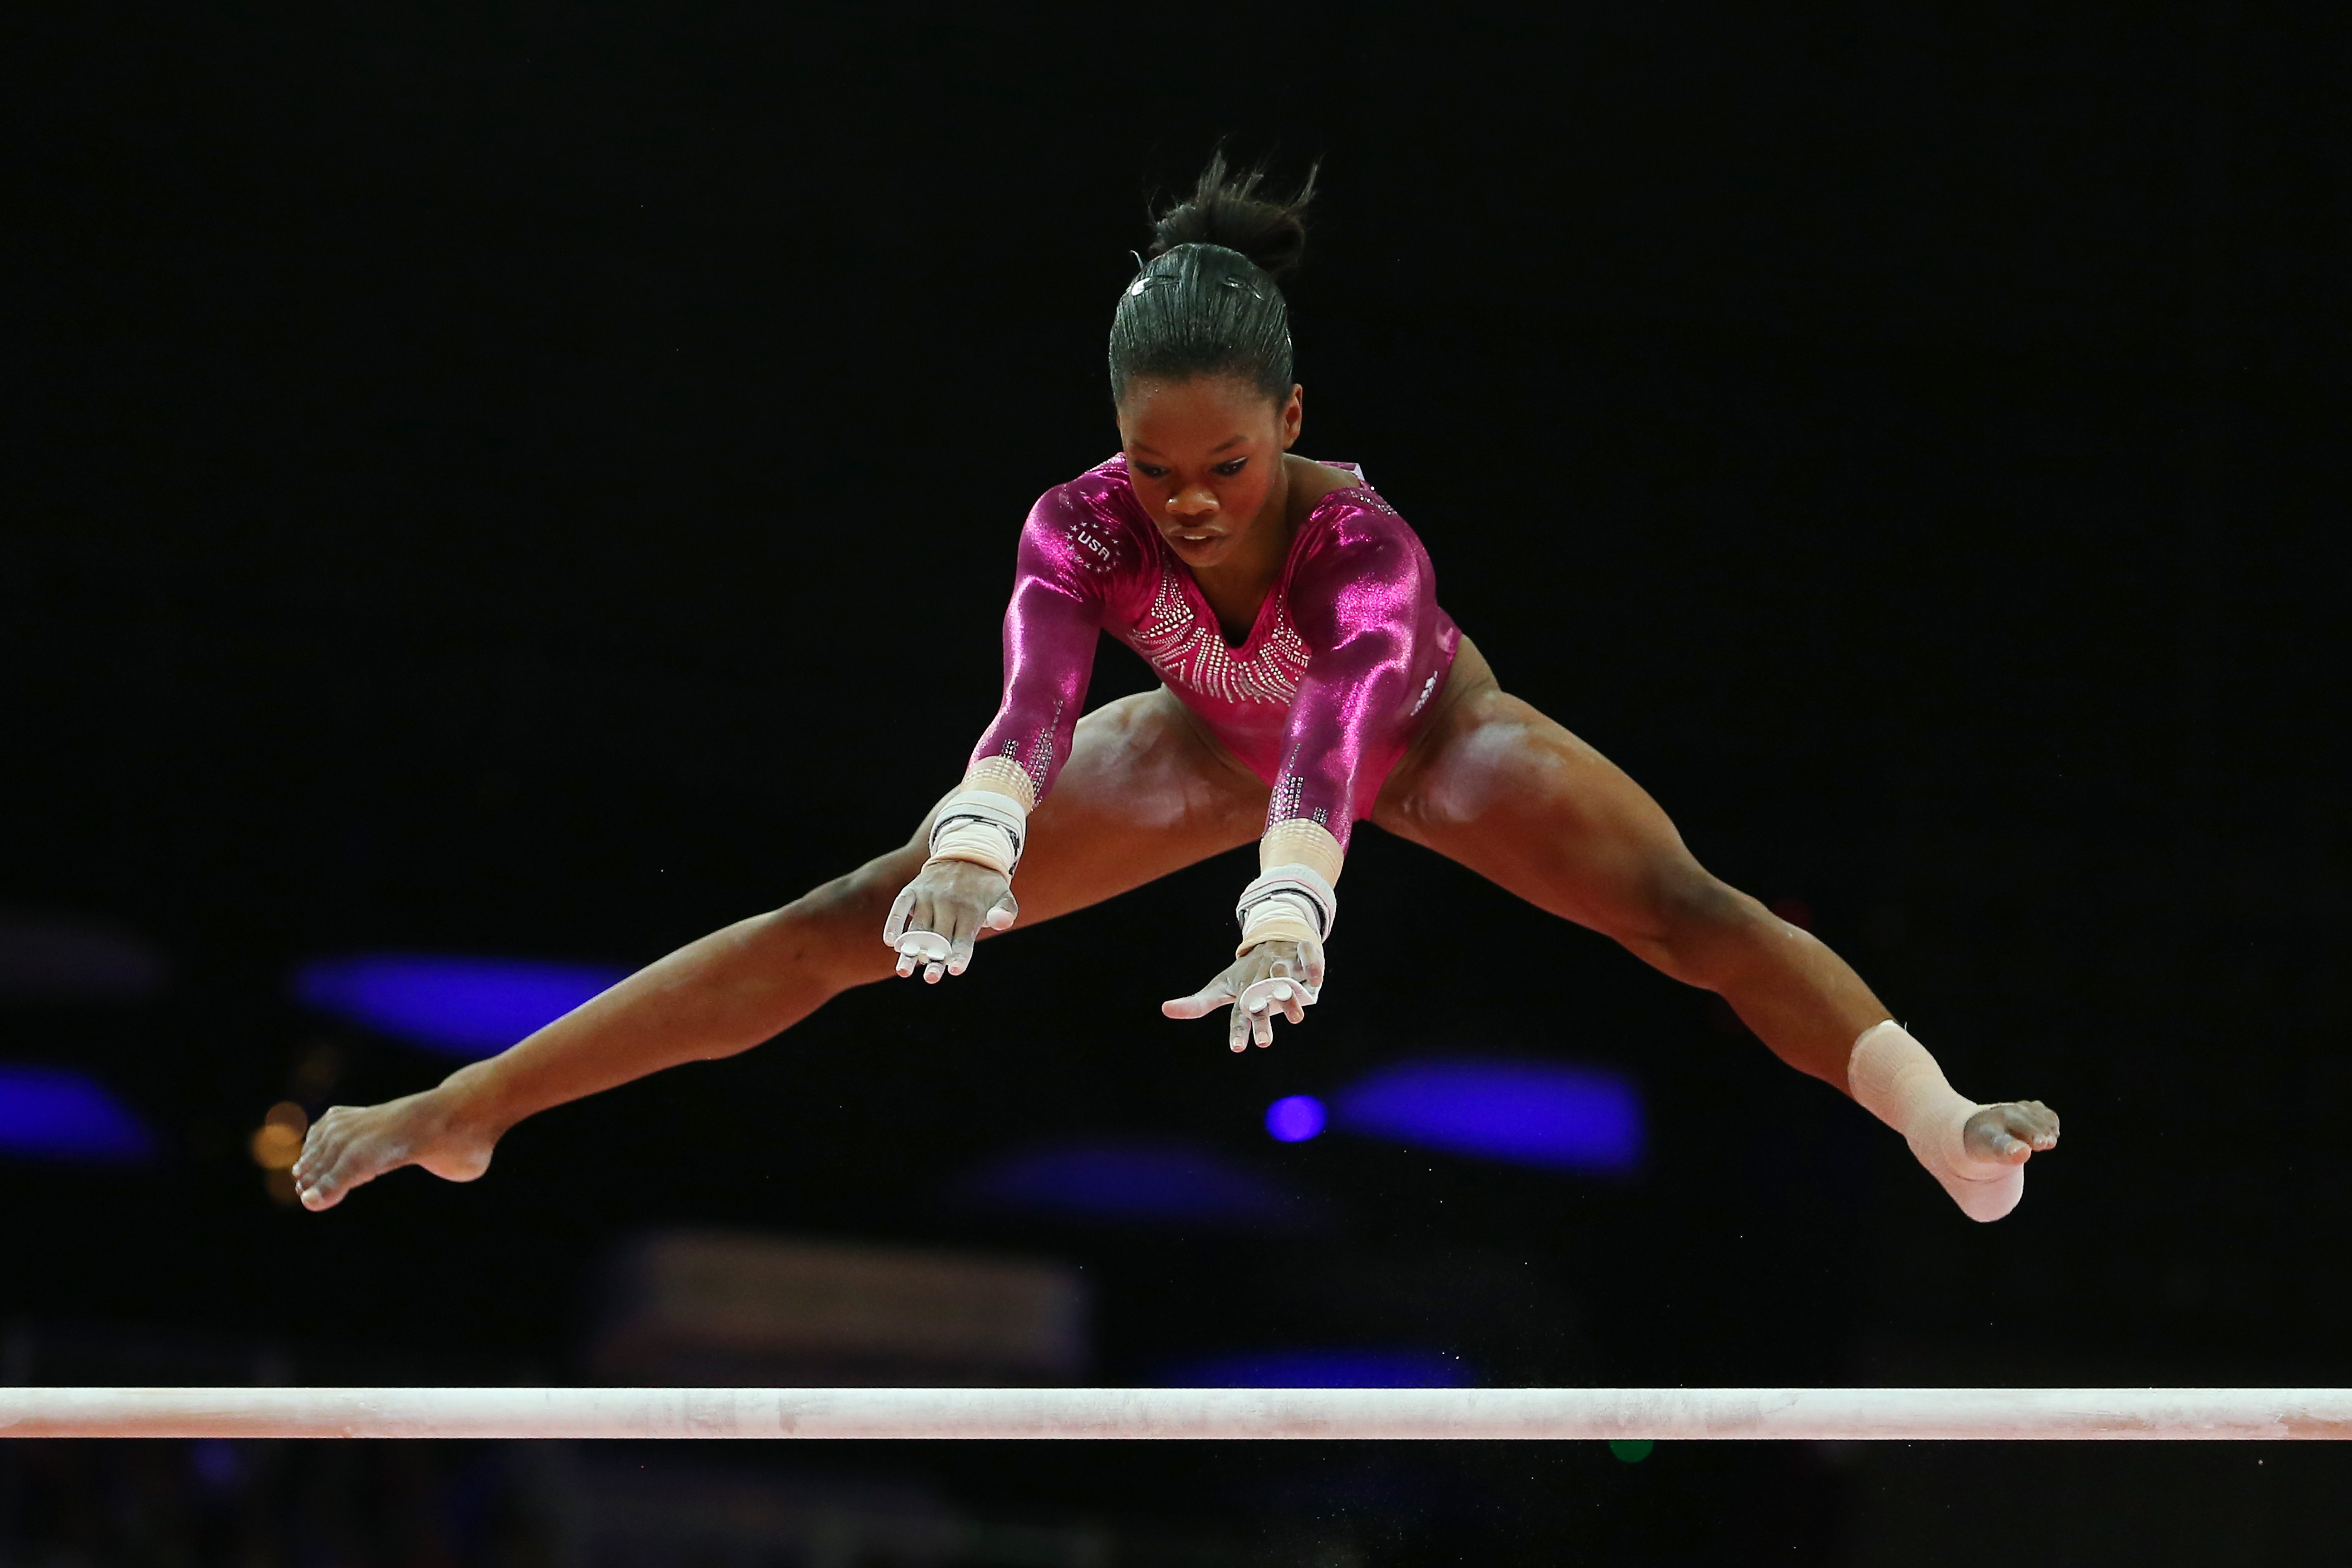 Gymnastics Wallpapers High Quality Download 5184x3456